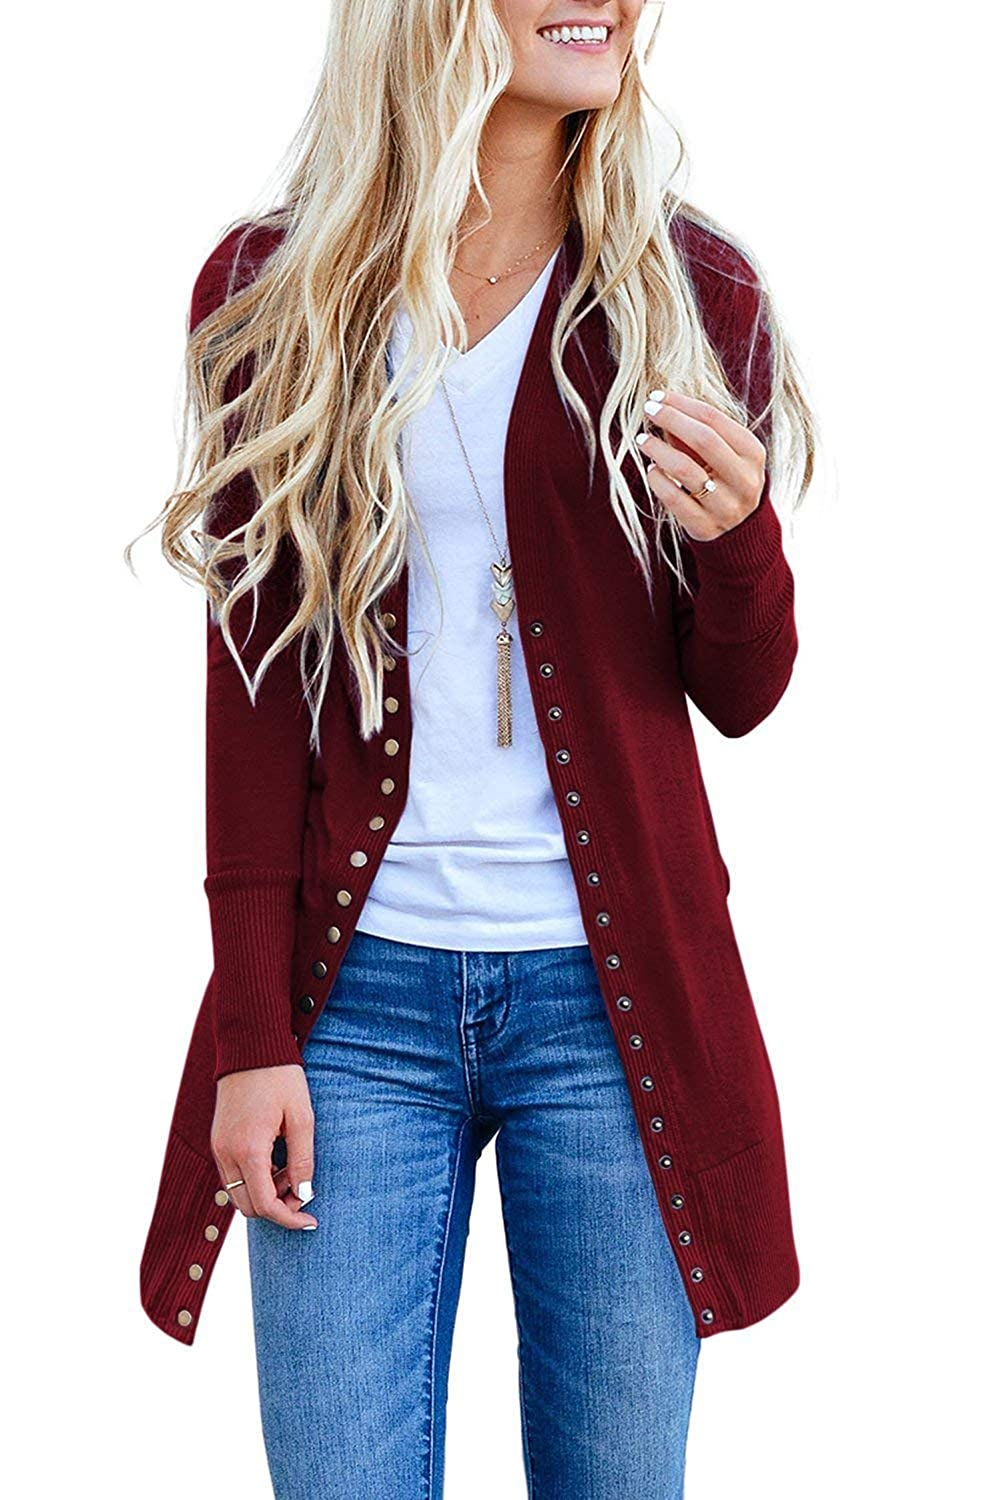 SALENT Women's Long Sleeve Snap Button Down Open Front Knitwears Casual Cardigans